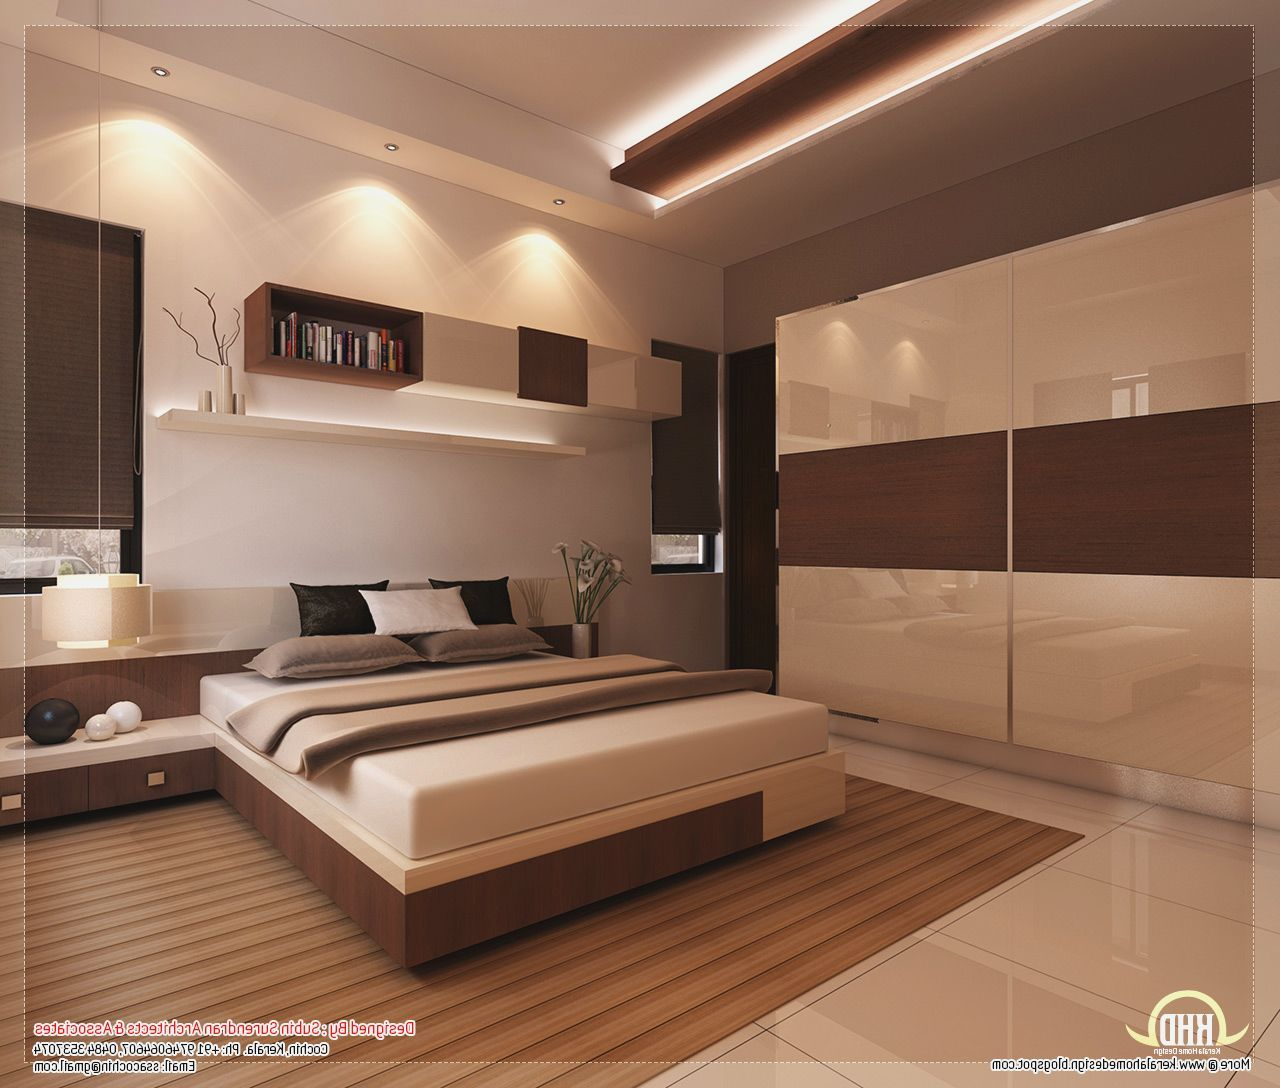 Interior Design For Small Spaces Living Room And Kitchen: Bedroom Designs India Low Cost More Picture Bedroom